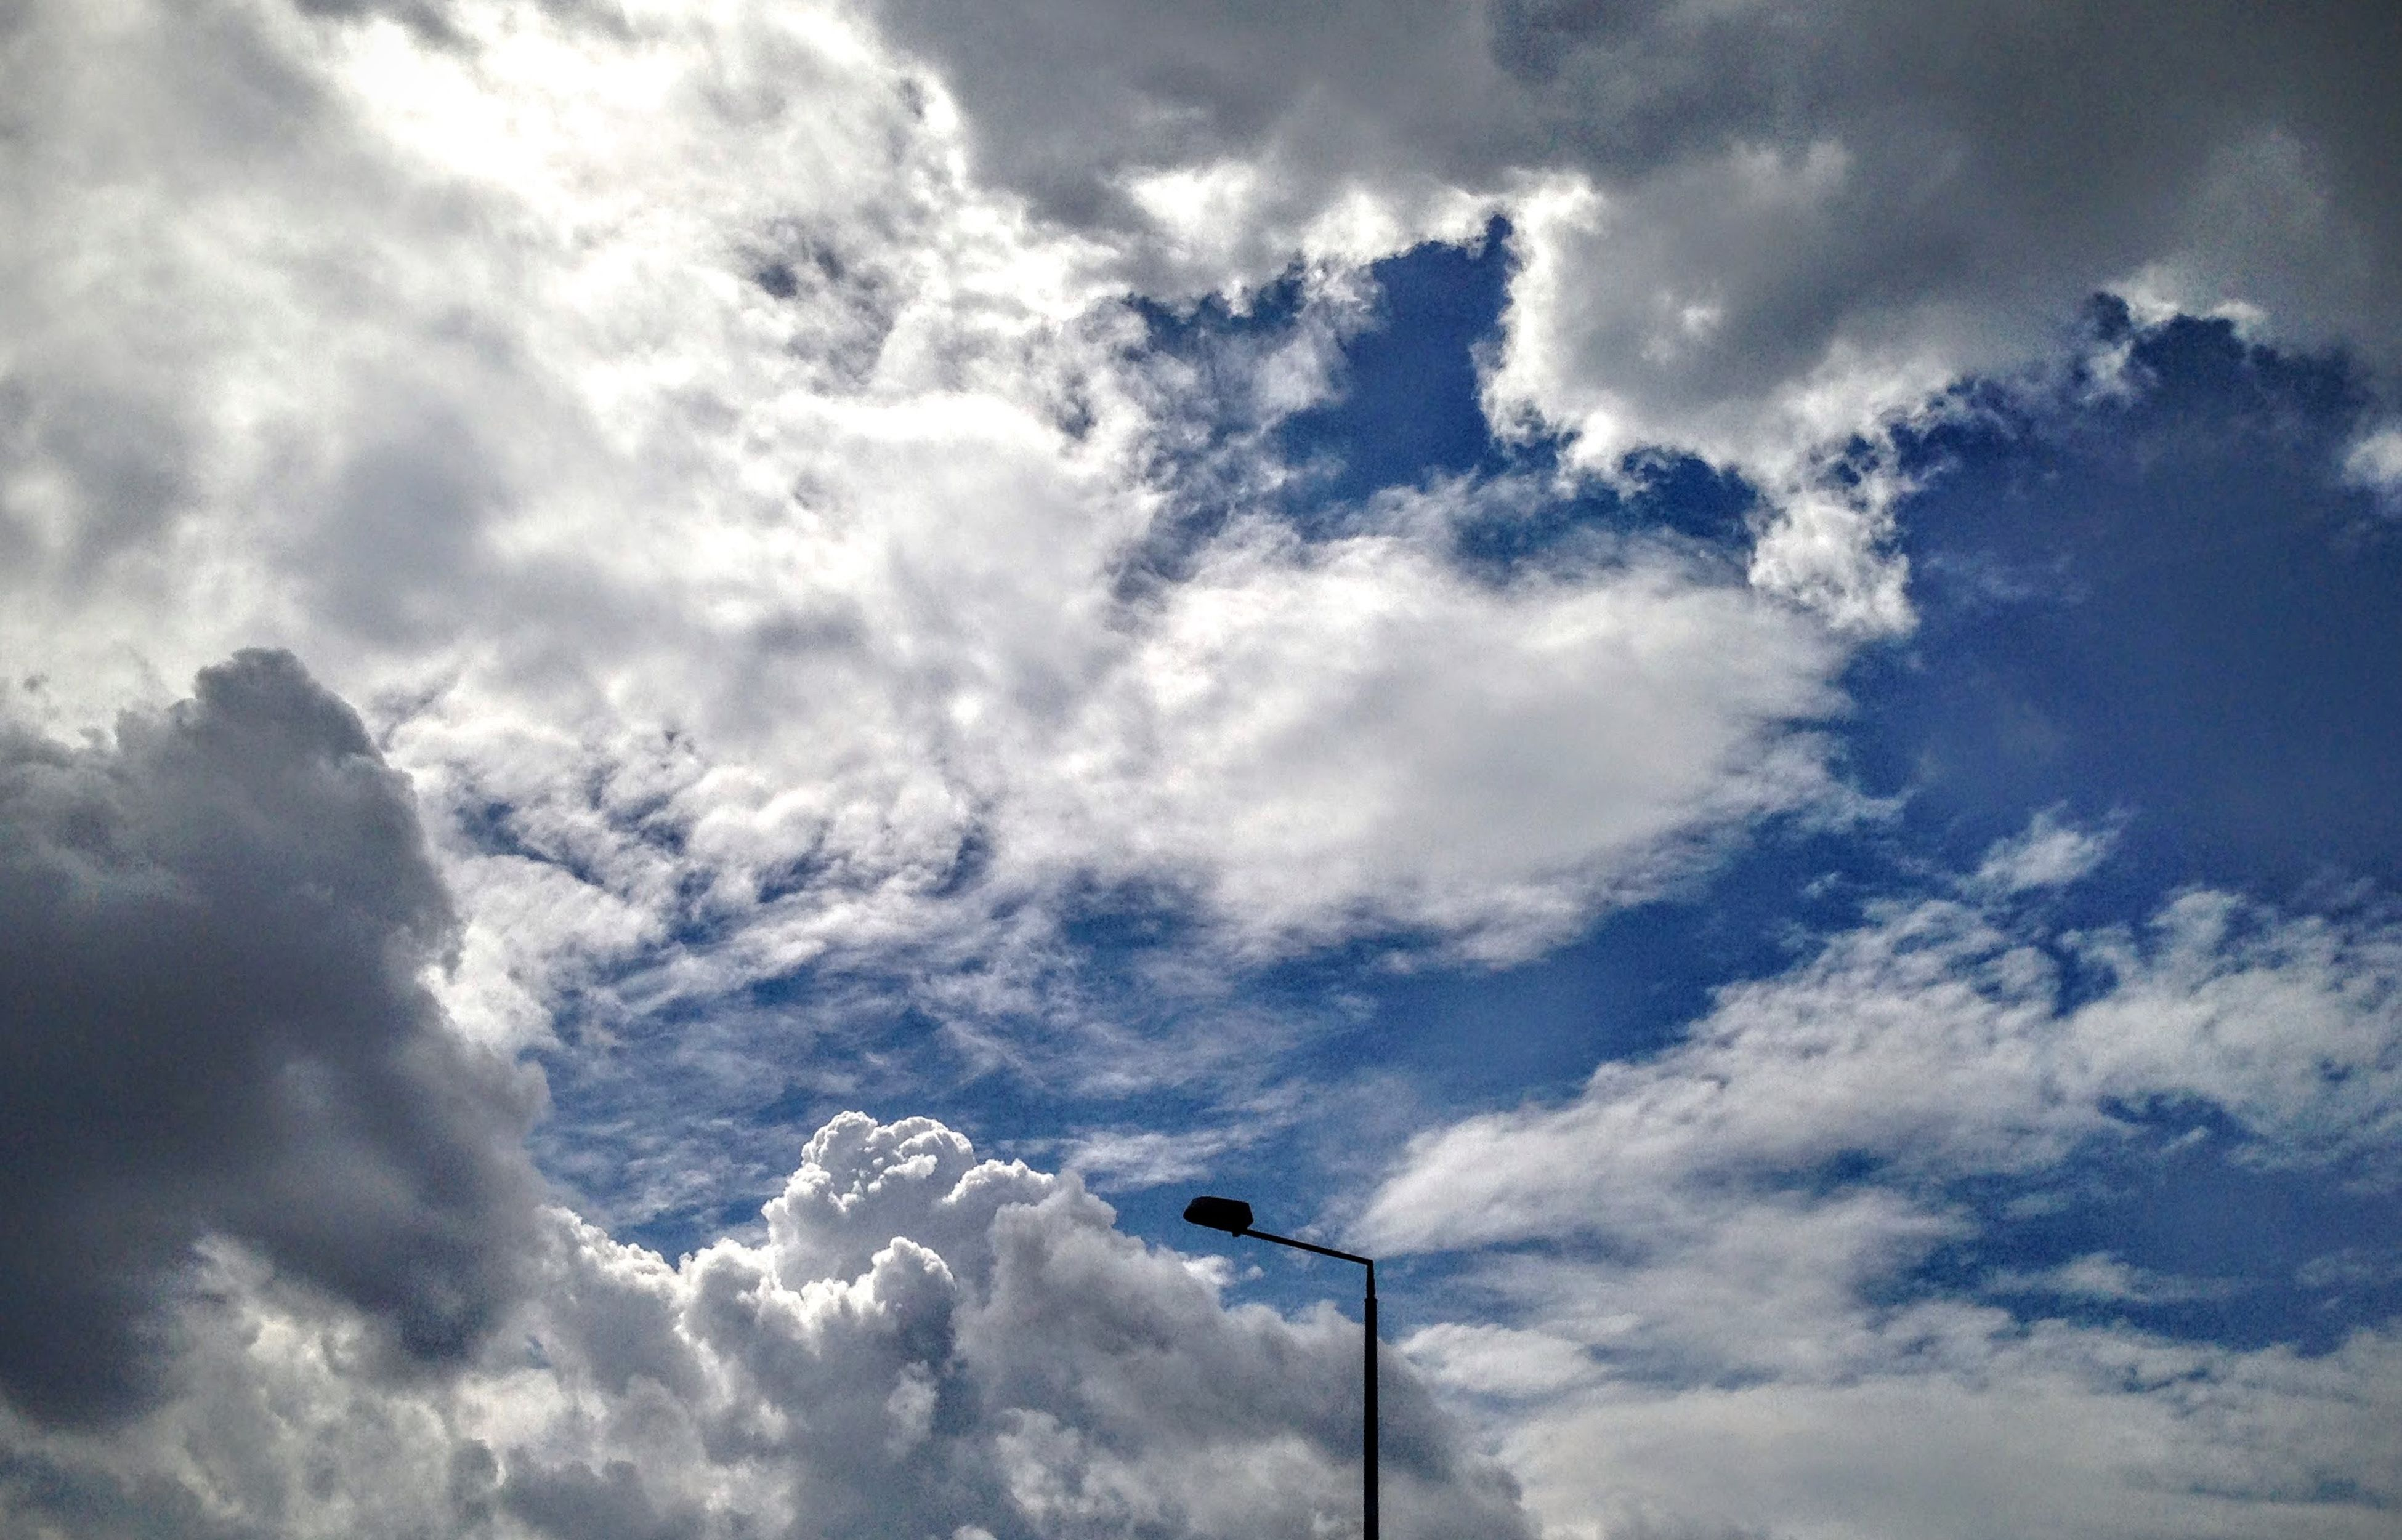 low angle view, sky, cloud - sky, cloudy, cloud, beauty in nature, tranquility, nature, weather, scenics, cloudscape, tranquil scene, day, outdoors, no people, overcast, blue, white, idyllic, high section, backgrounds